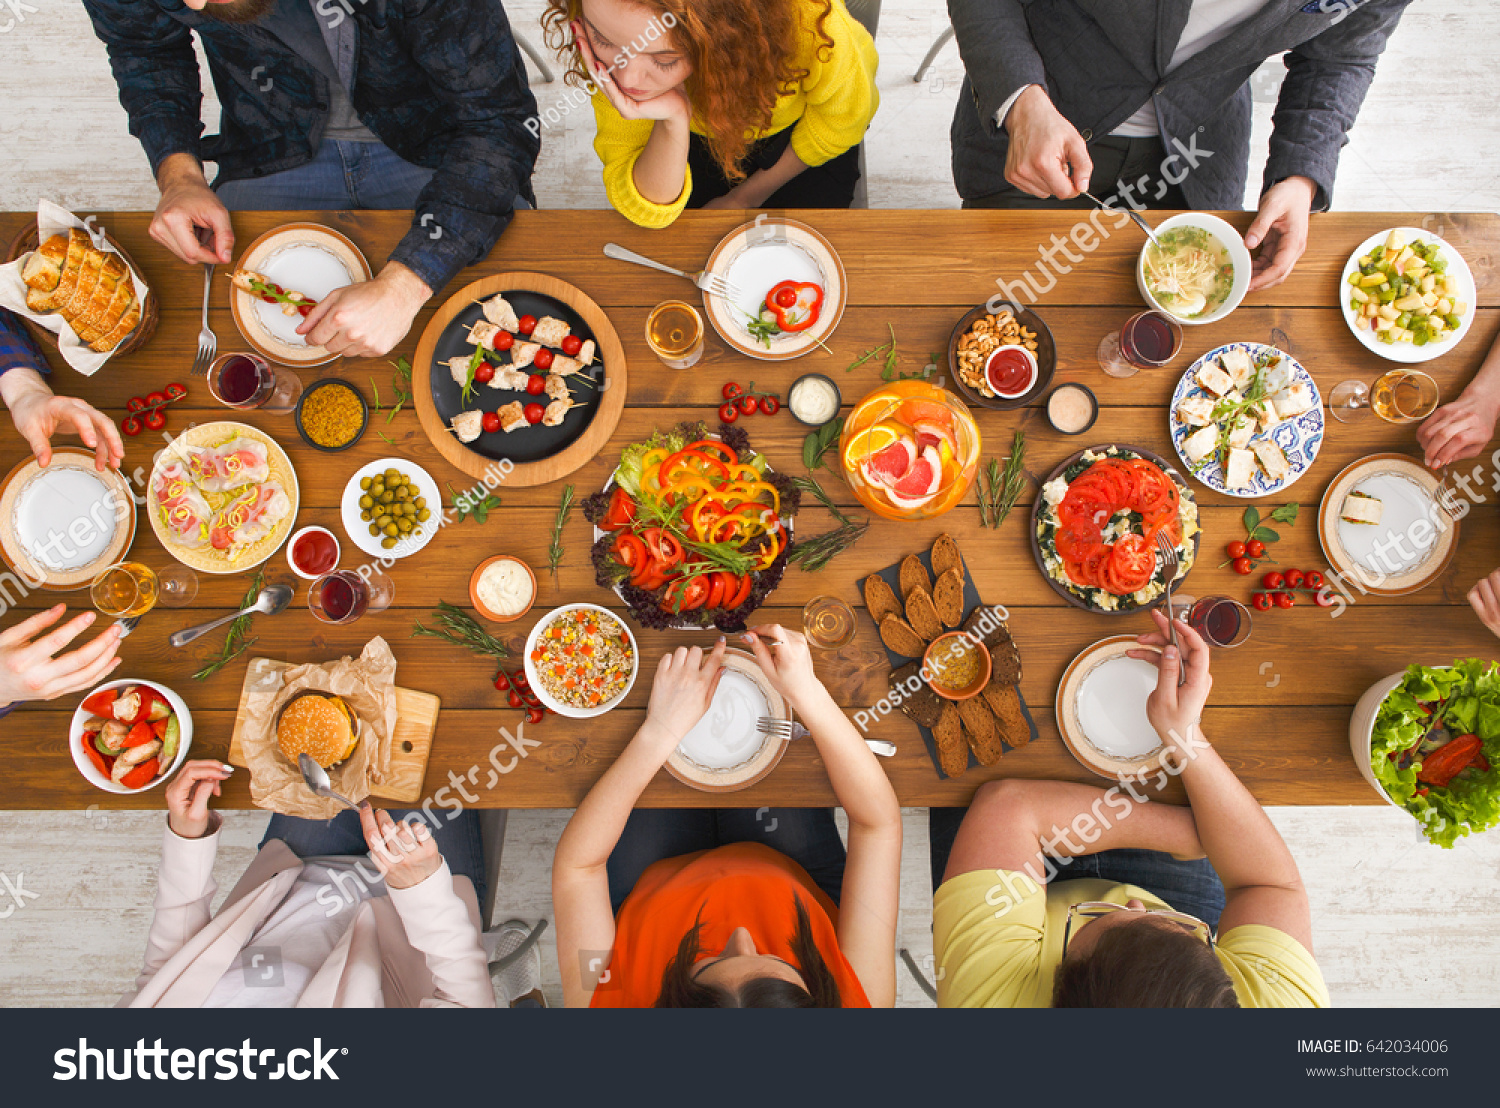 Dinner table top view - Friends Dinner Table Top View People Eat Healthy Food Together Home Party